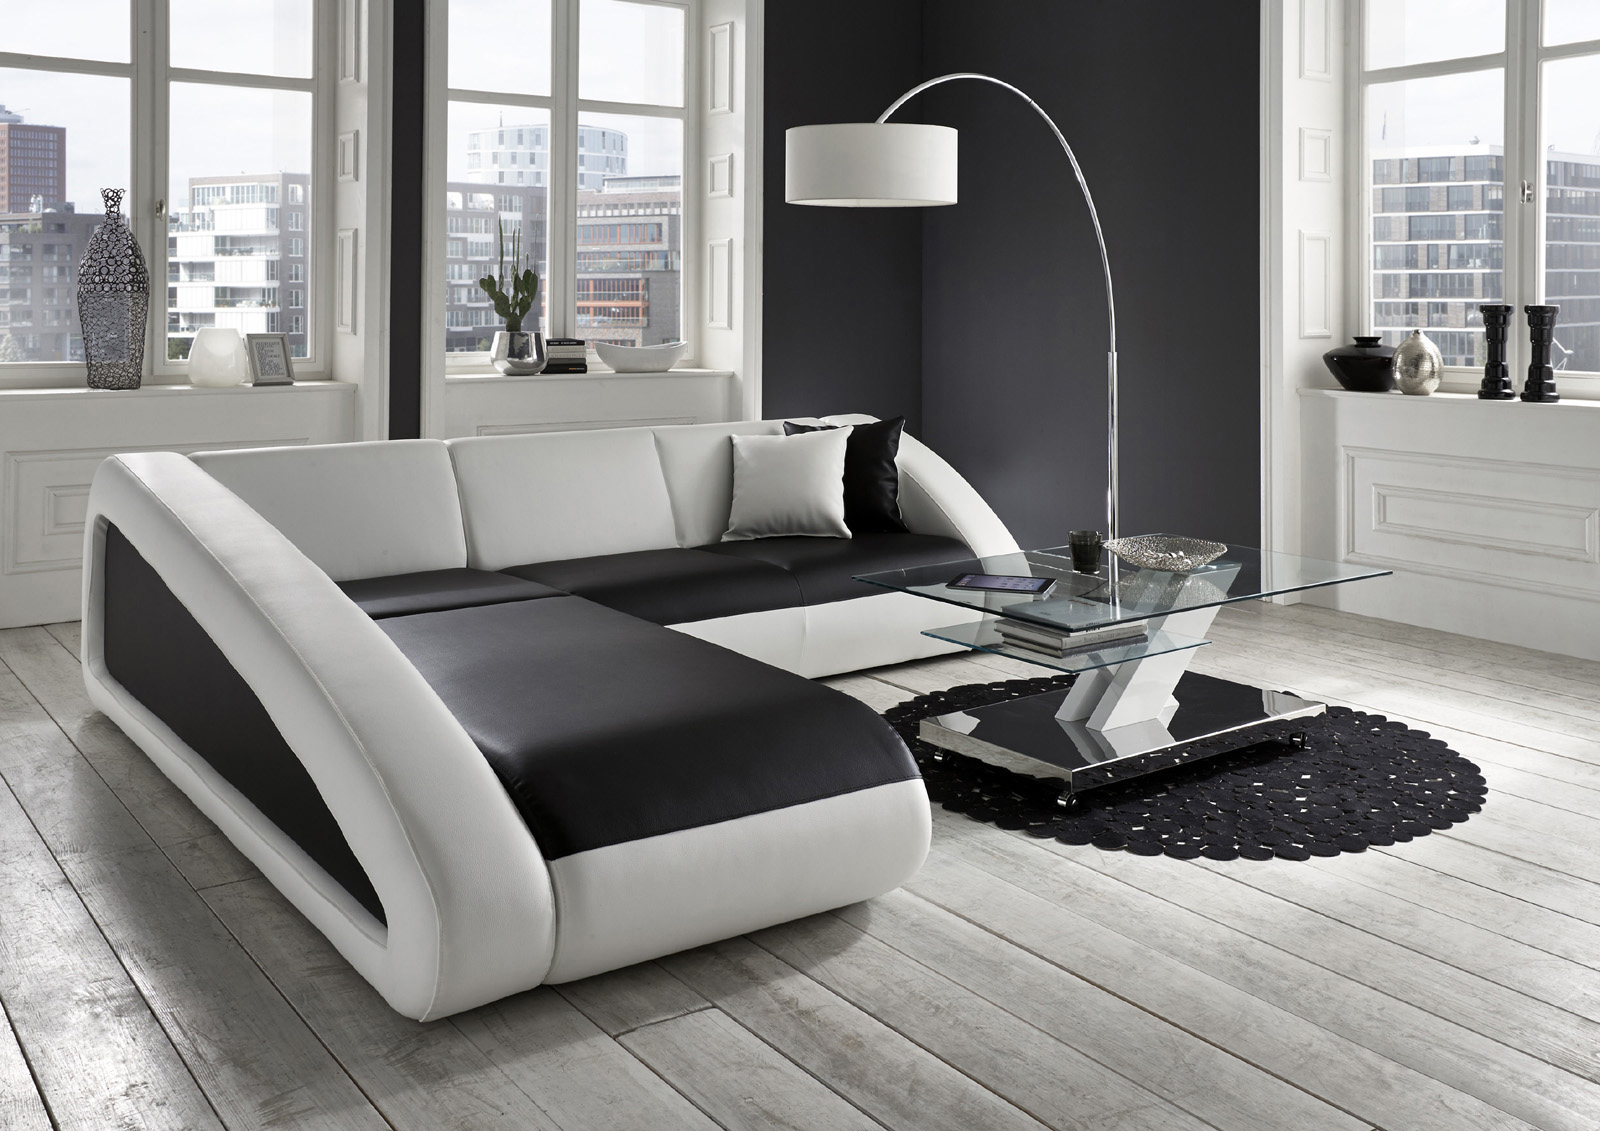 sam ecksofa schwarz wei ciao polsterecke 250 x 270 cm lieferbar. Black Bedroom Furniture Sets. Home Design Ideas